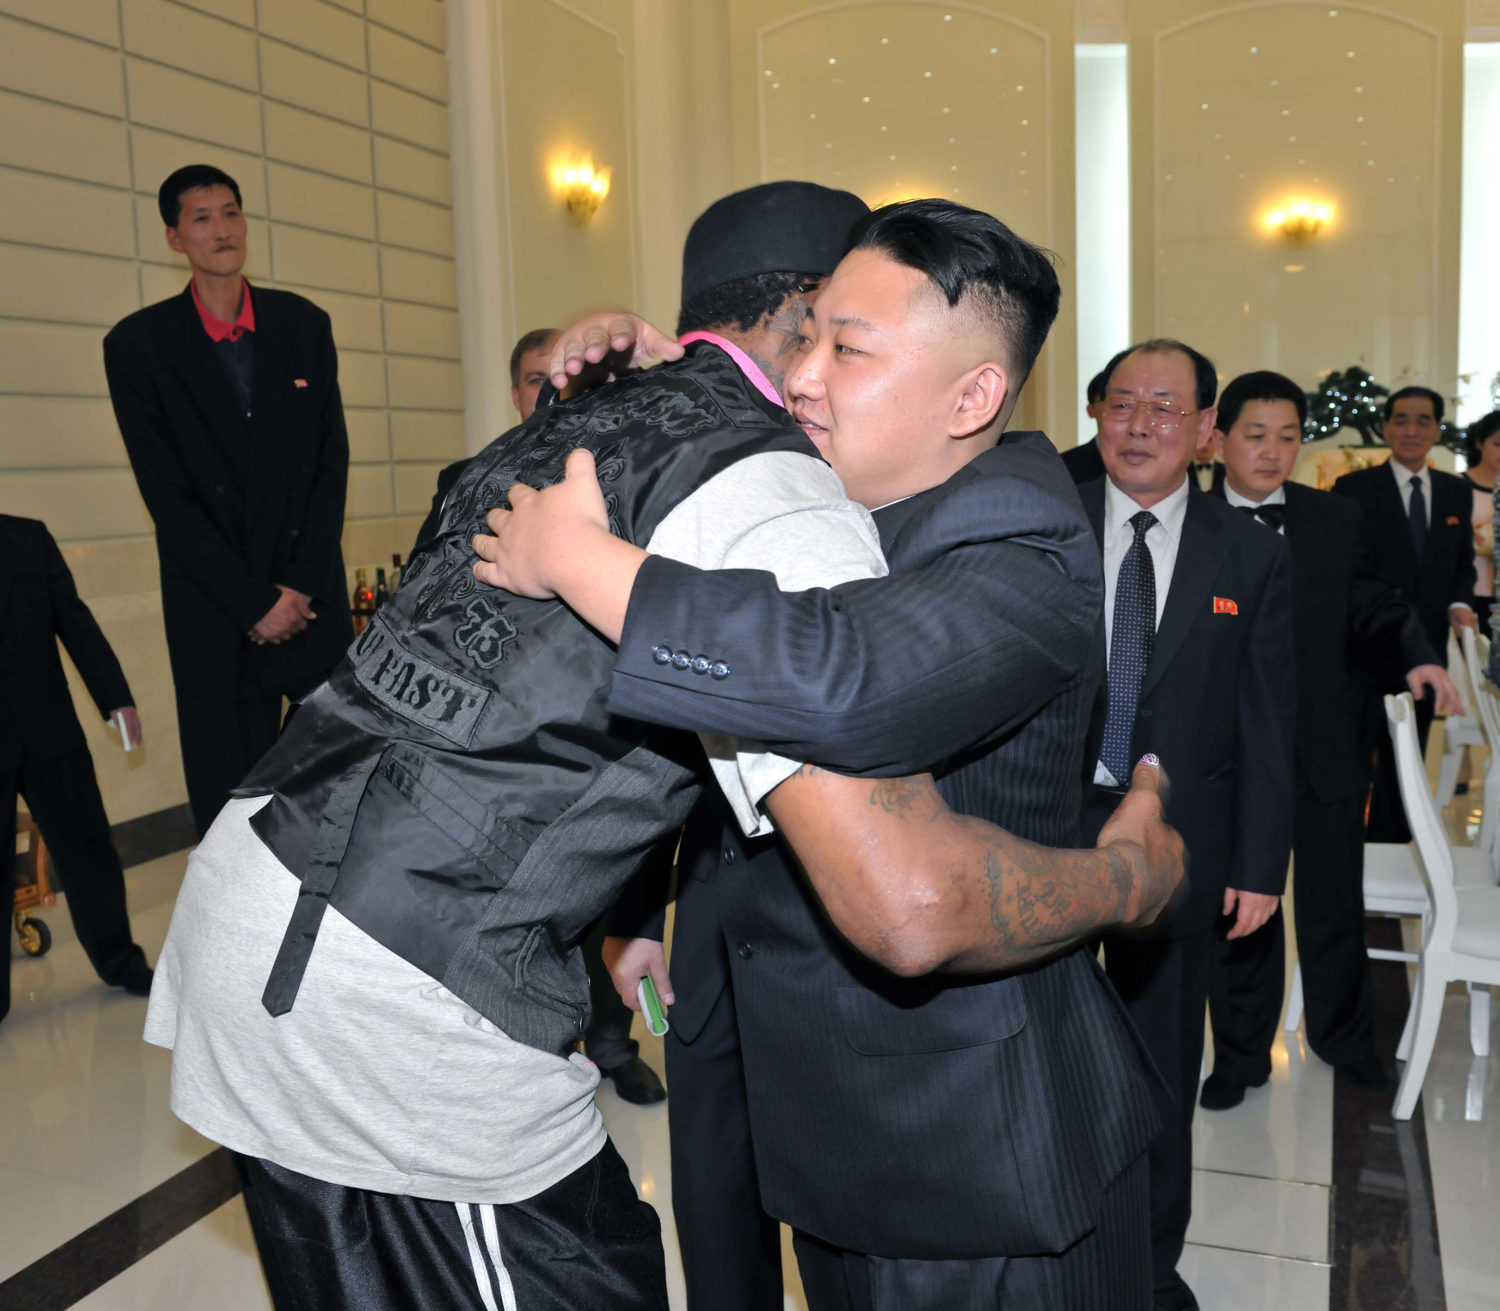 North Korean leader Kim Jong-Un and former NBA basketball player Dennis Rodman (front L) hug in Pyongyang in this undated picture released by North Korea's KCNA news agency on March 1, 2013. REUTERS/KCNA (NORTH KOREA